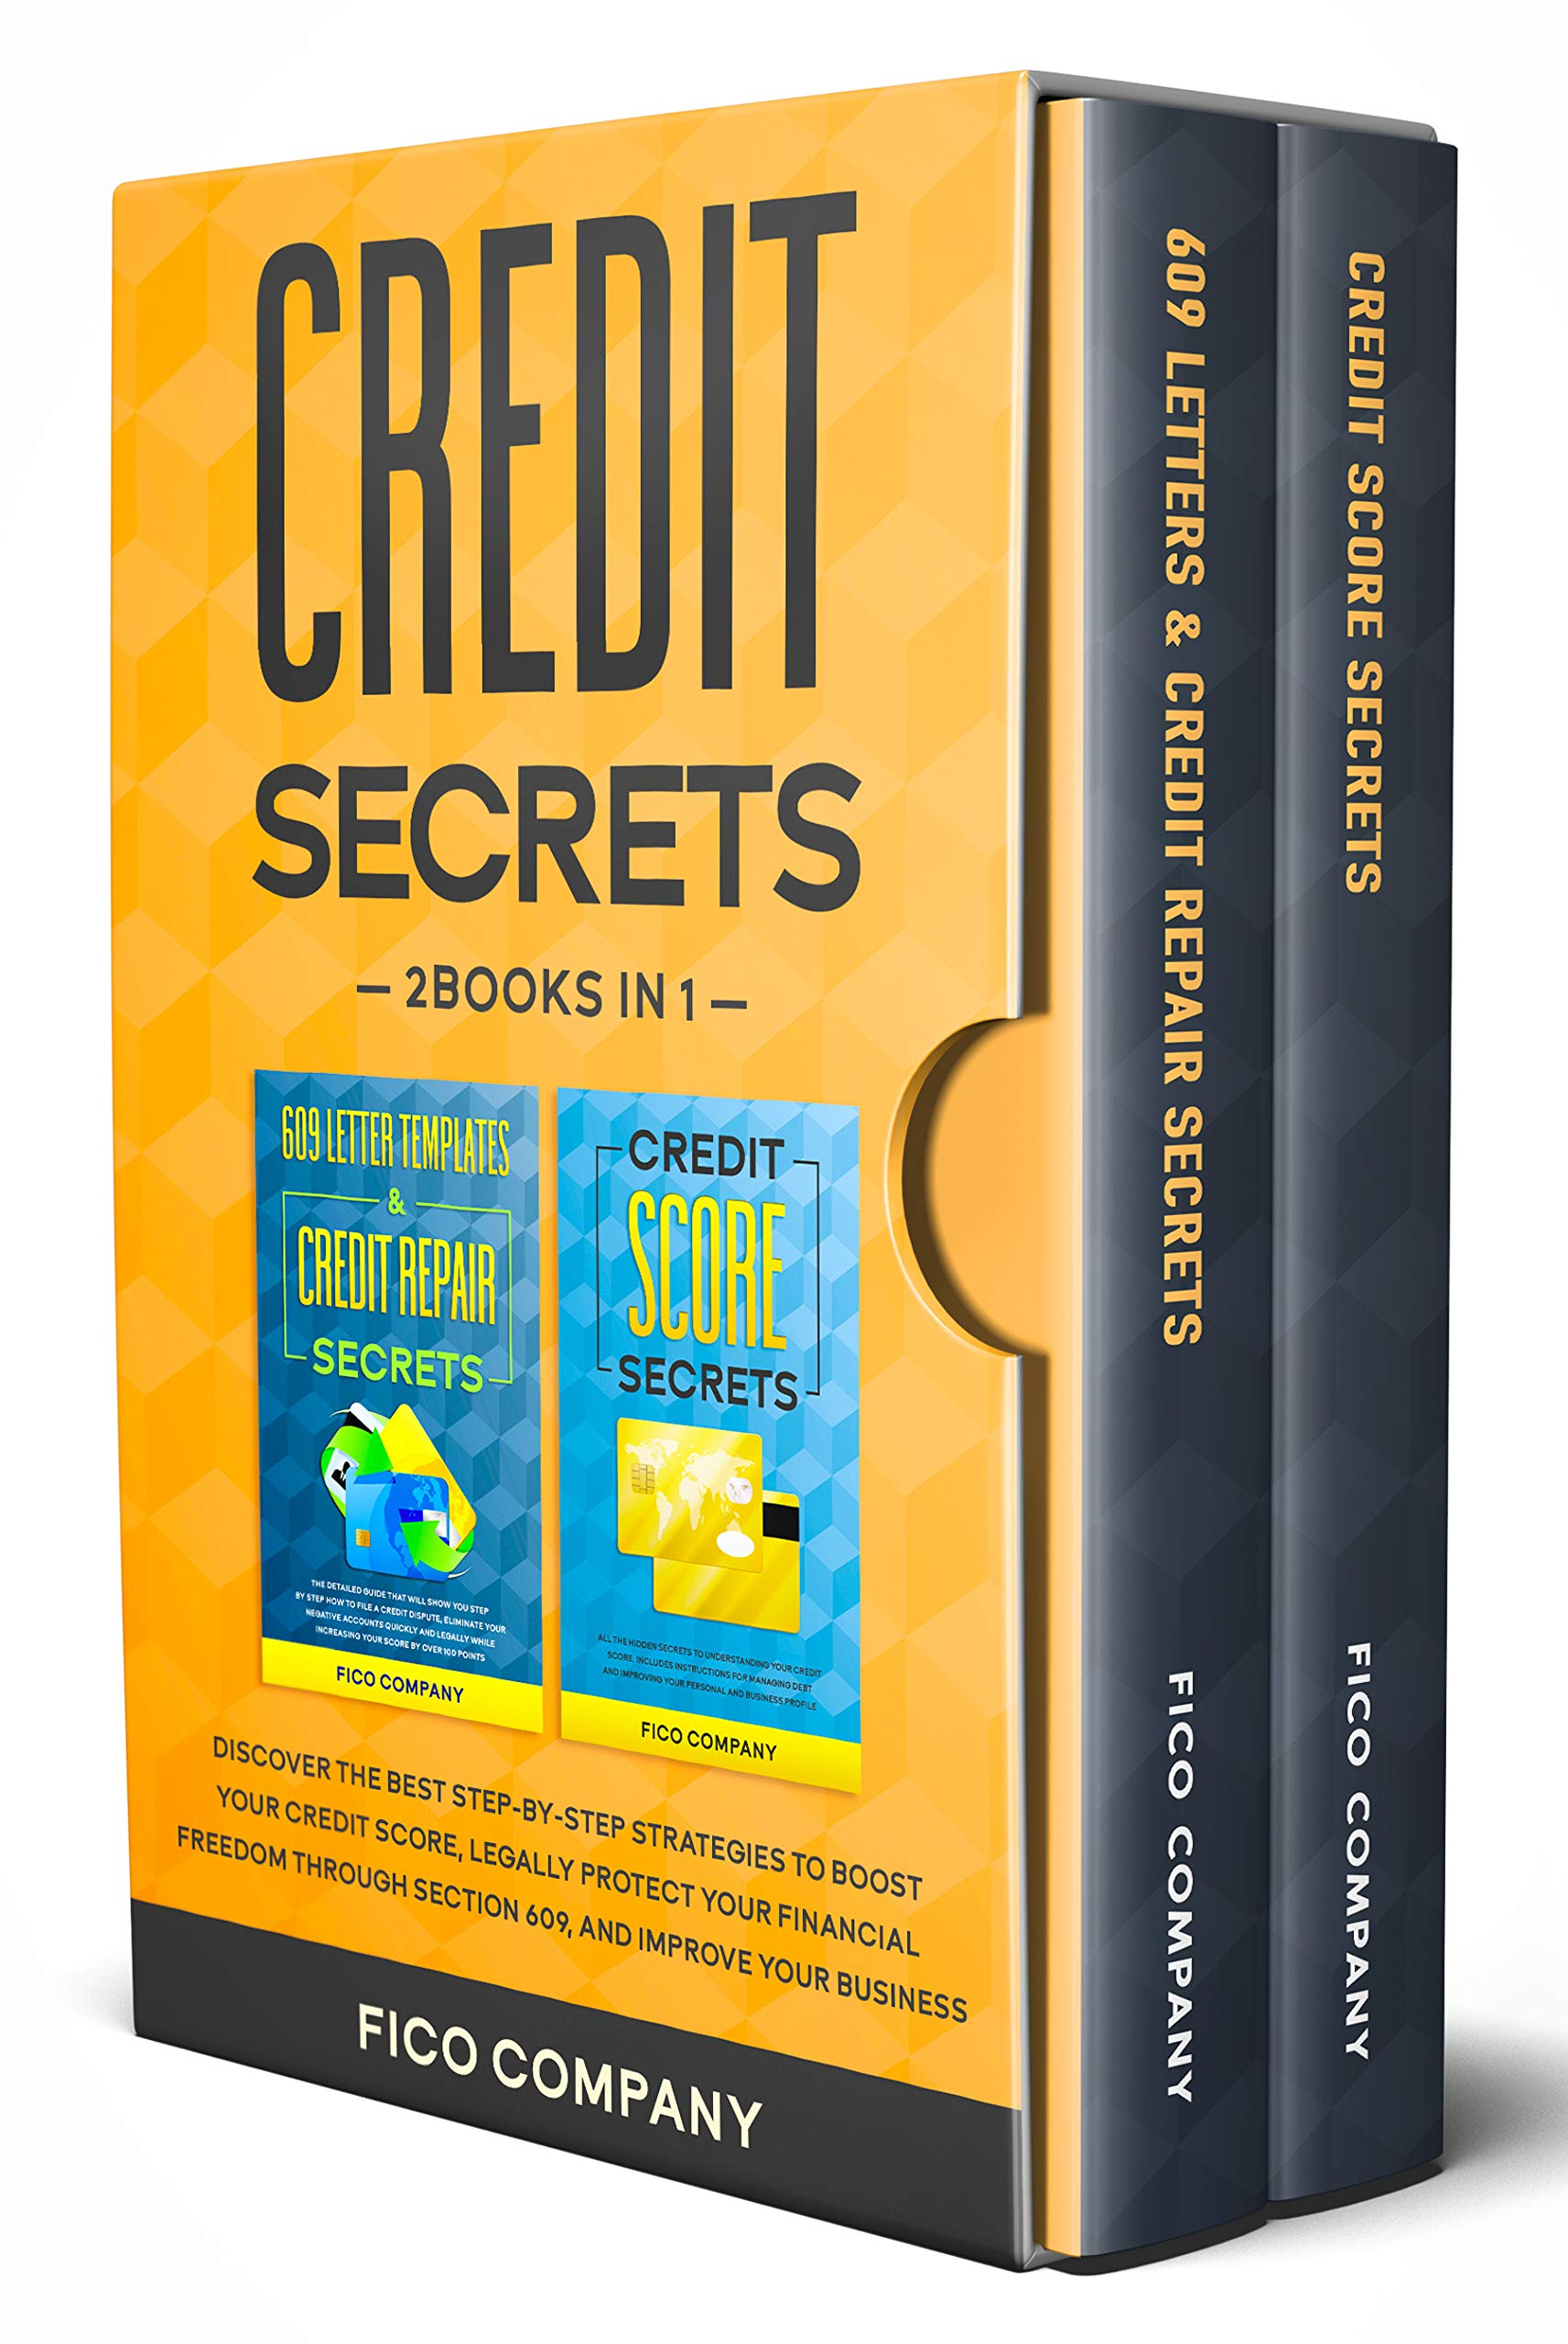 CREDIT SECRETS: 2 BOOKS in 1 -Discover the best step-by-step strategies to boost your credit score, legally protect your financial freedom through section 609, and improve your business